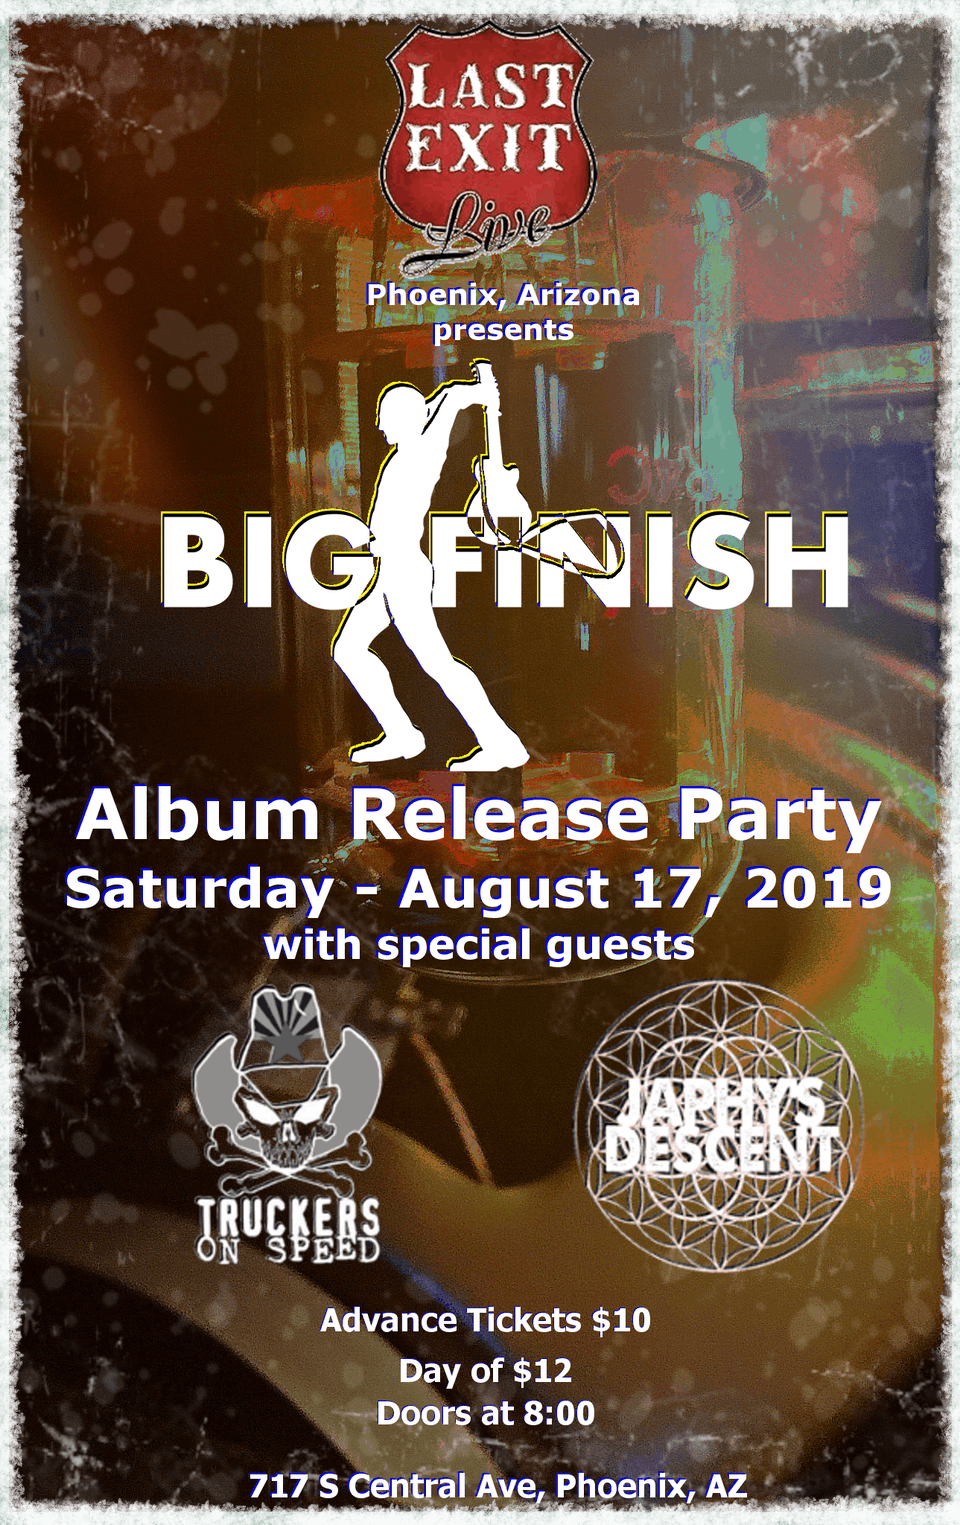 Big Finish - Album Release